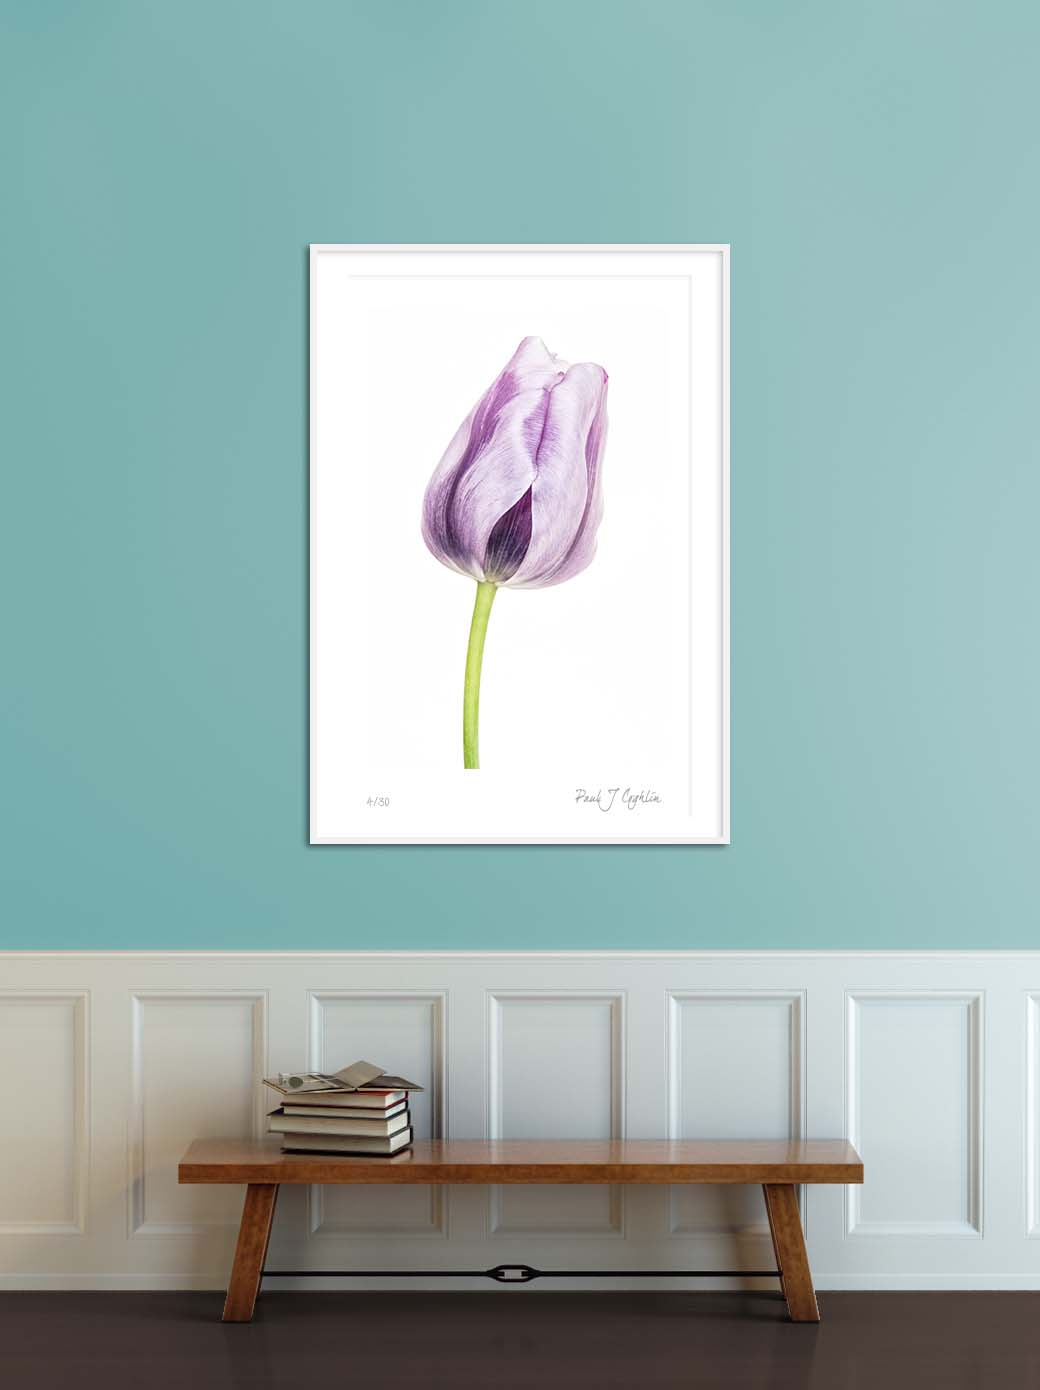 Blue Parrot Tulip V.Limited edition photographic print of a blue tulip by fine art photographer Paul Coghlin FBIPP.